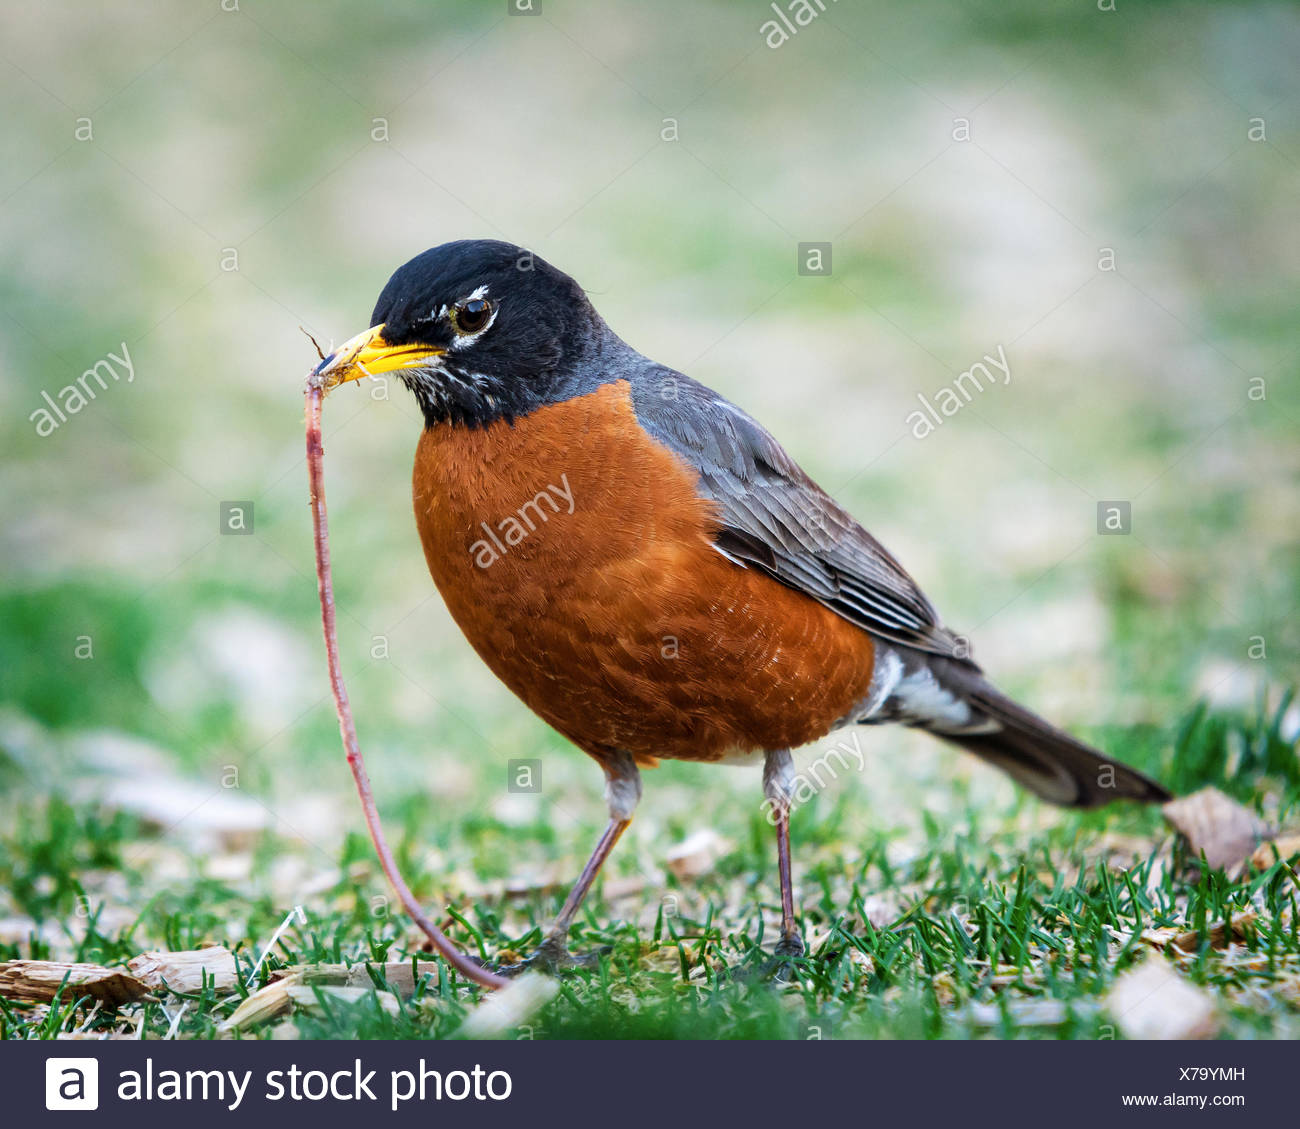 Robin with a worm in it's mouth - Stock Image